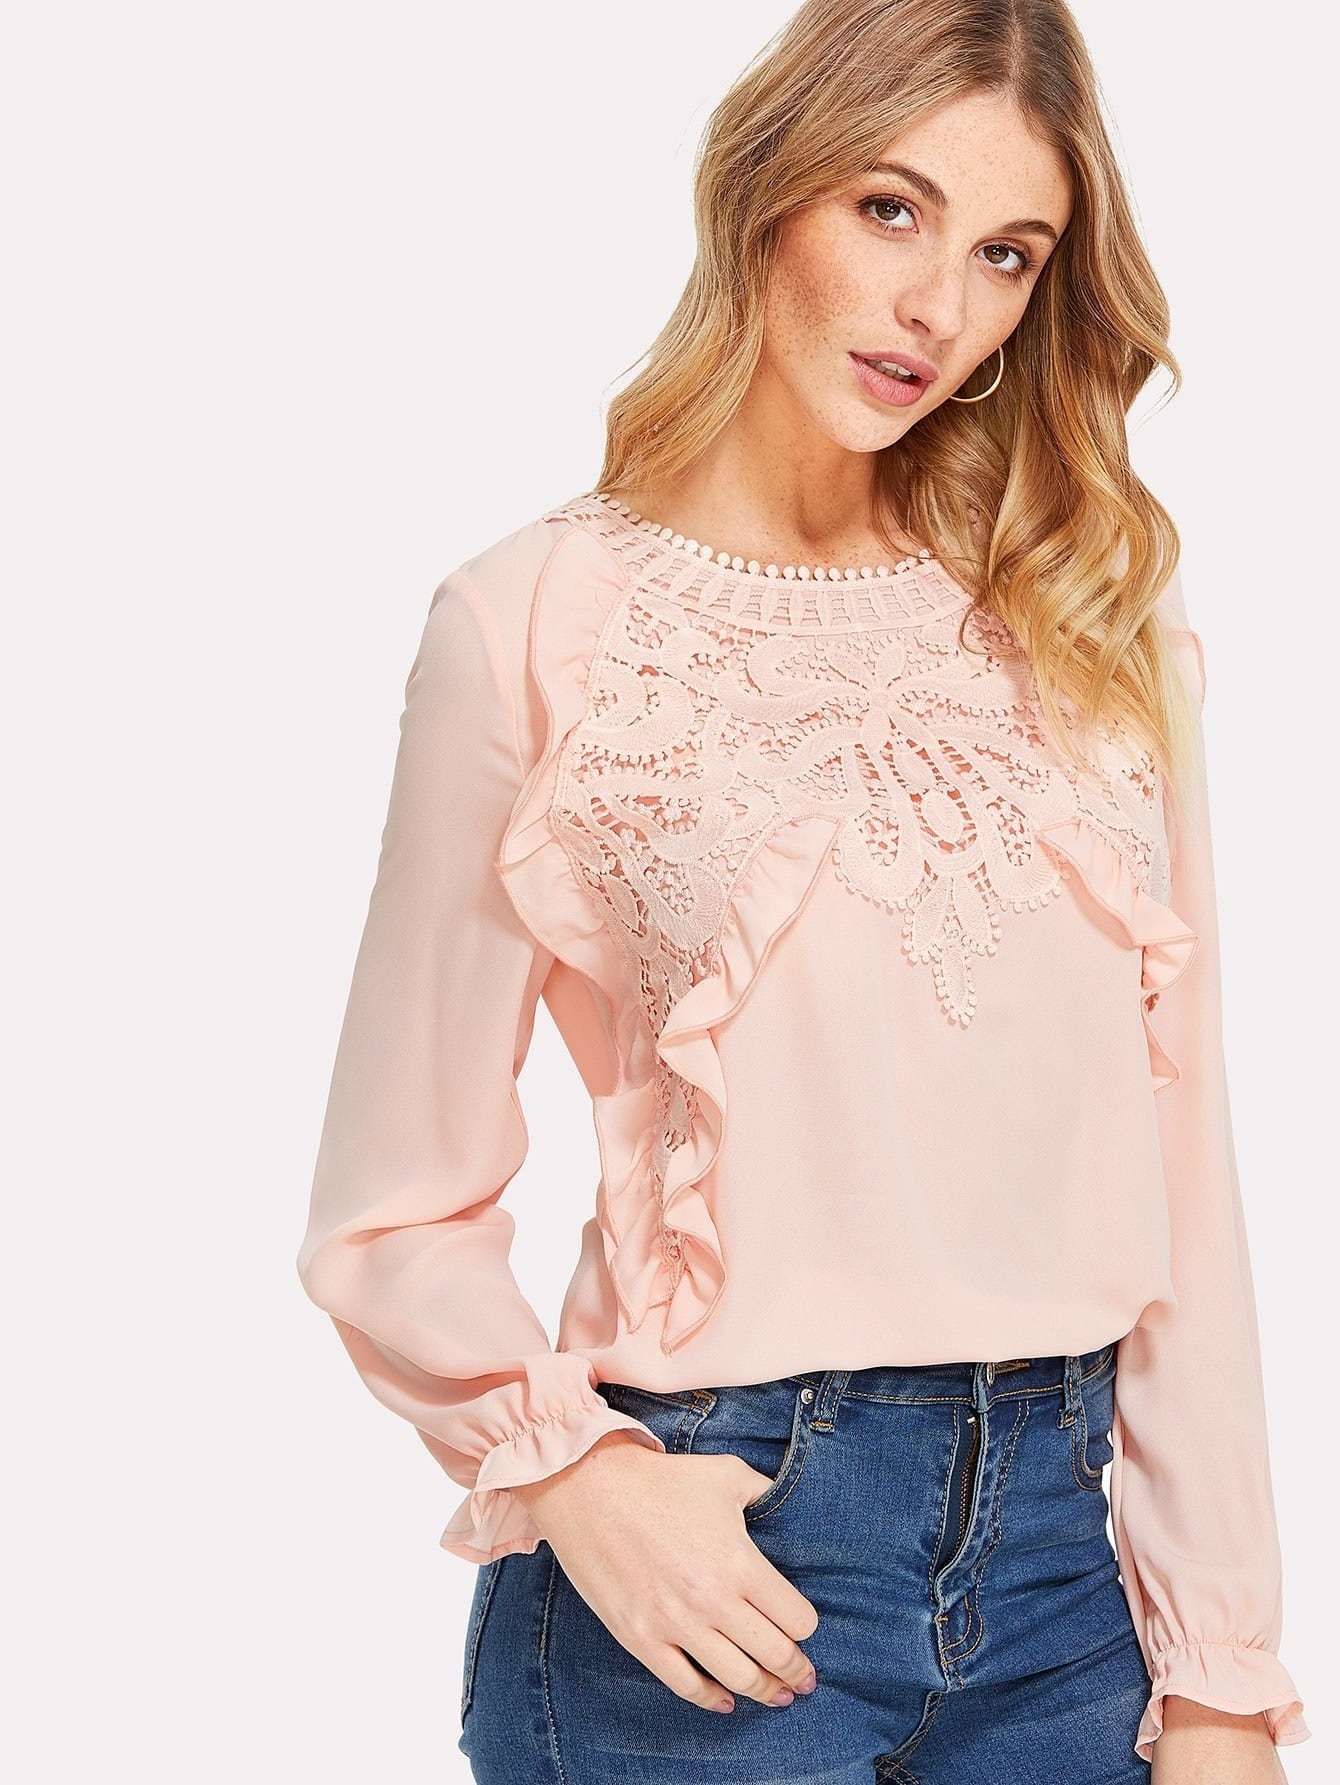 Ruffle And Guipure Lace Detail Top pearl and layered lace detail pullover